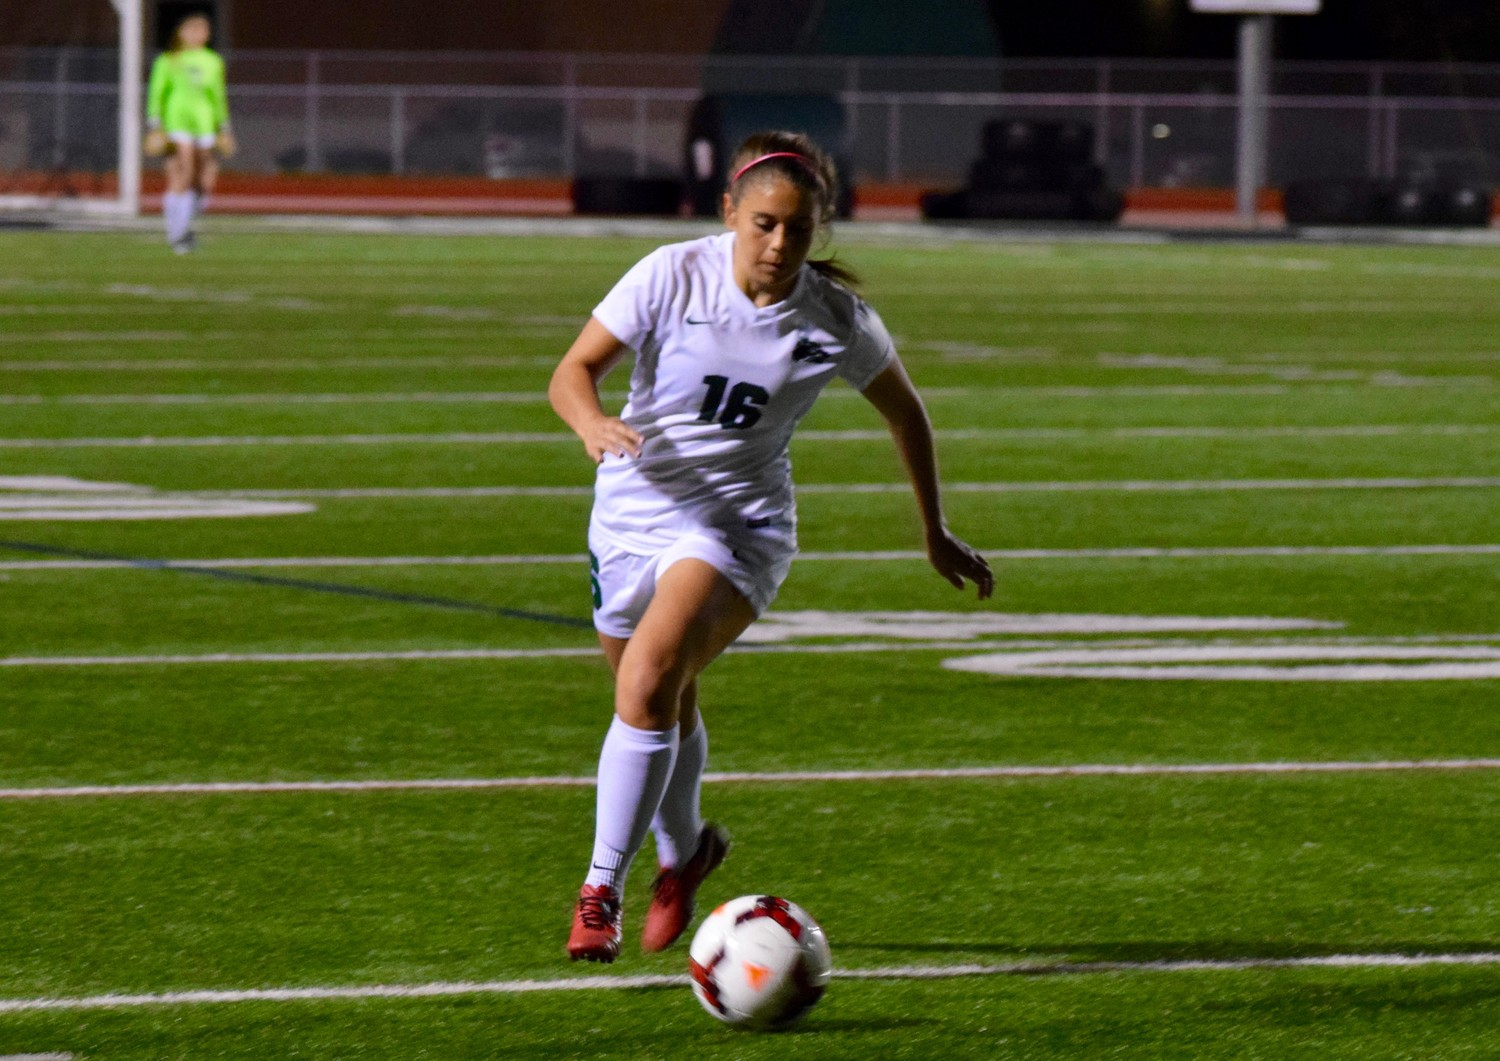 Bella Granada scored a goal and Cedar Park beat Georgetown 3-0 on Tuesday night.